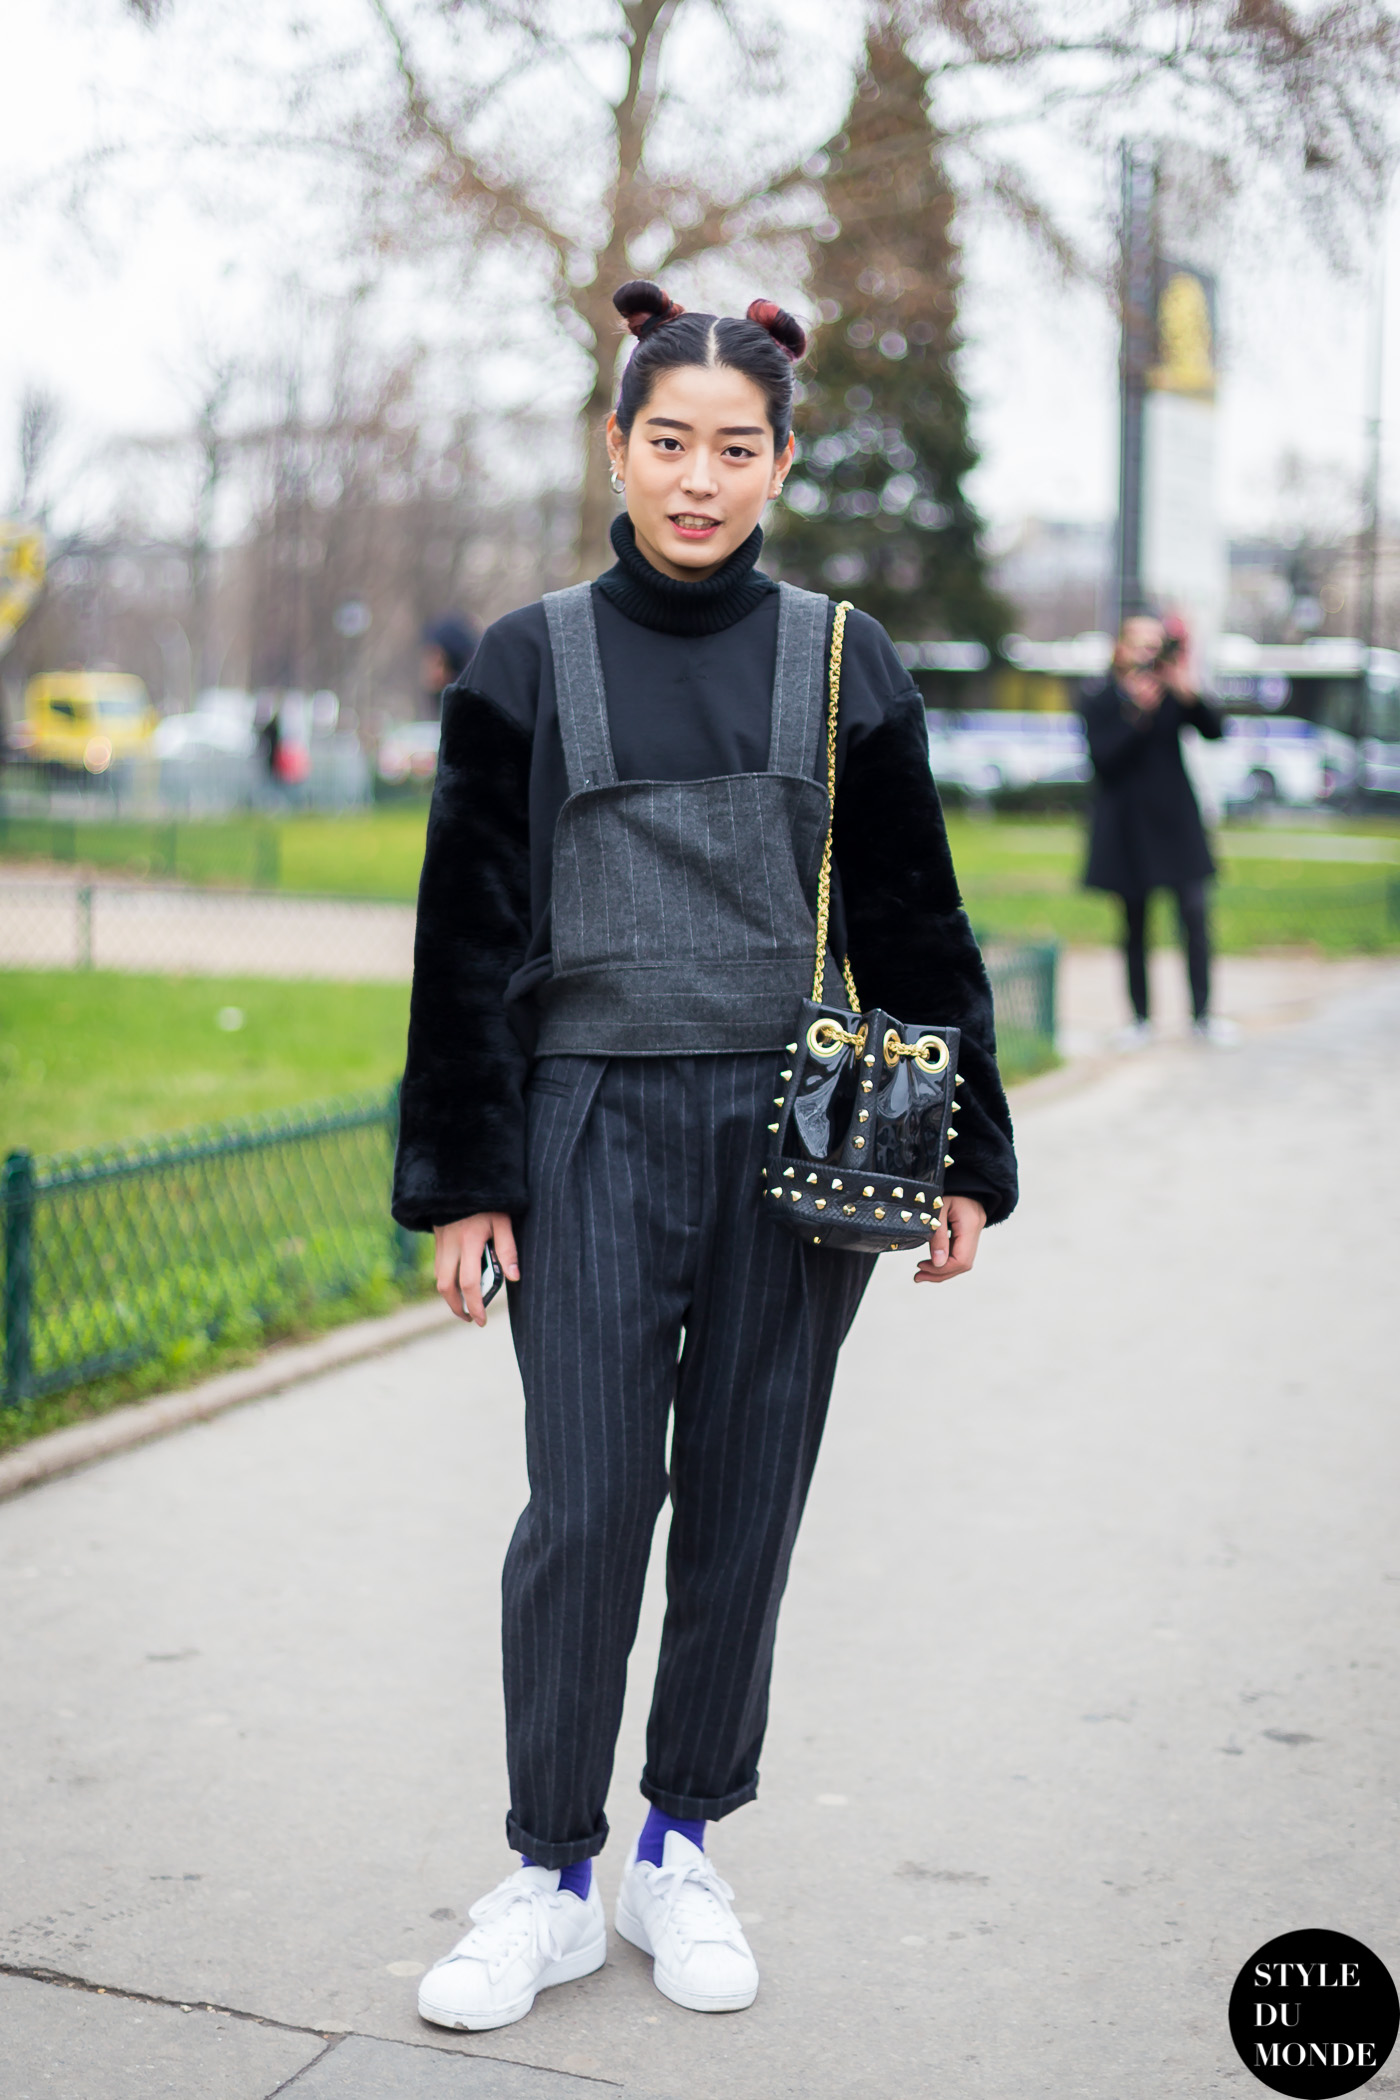 After Chanel Street Style Street Fashion Streetsnaps by STYLEDUMONDE Street Style Fashion Blog